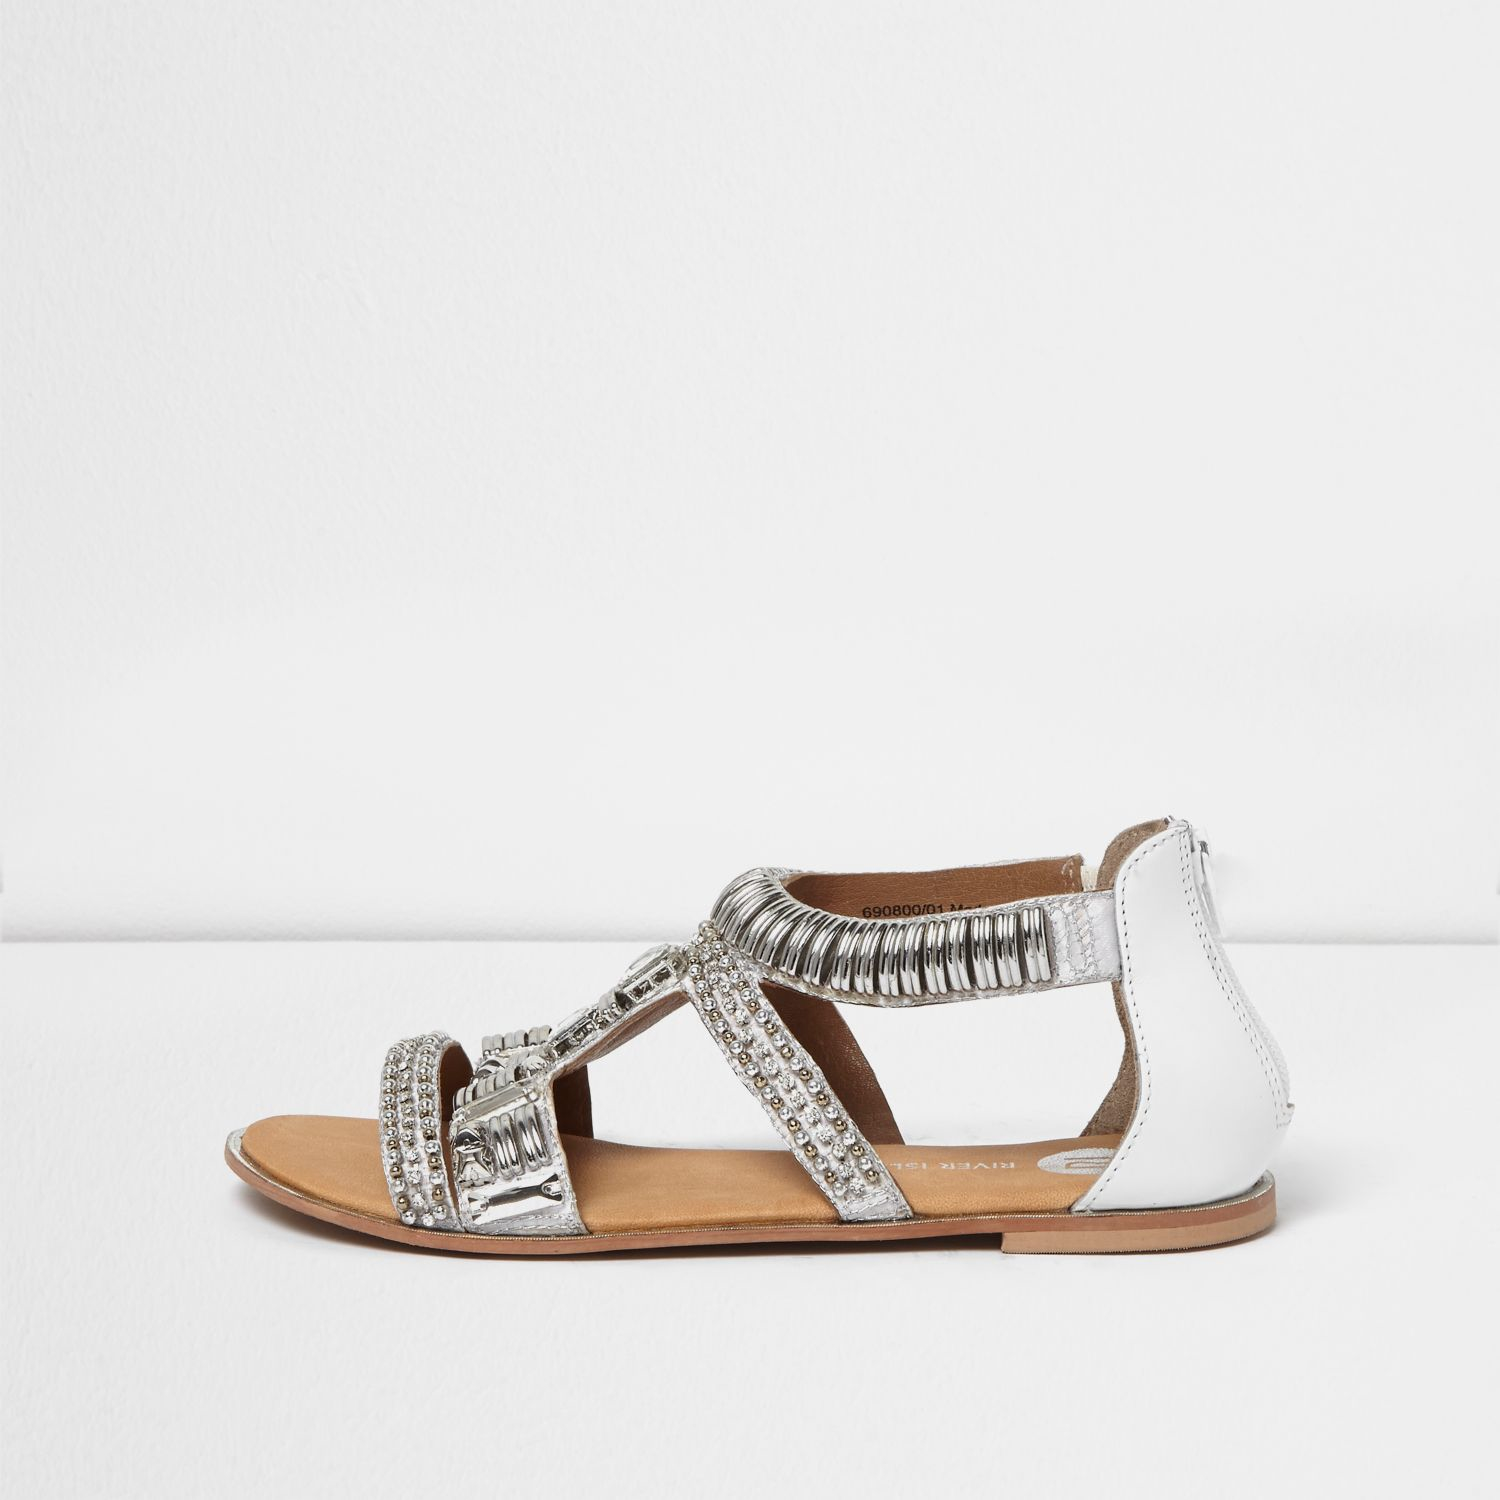 River Island Silver Embellished Sandal In Gray Lyst